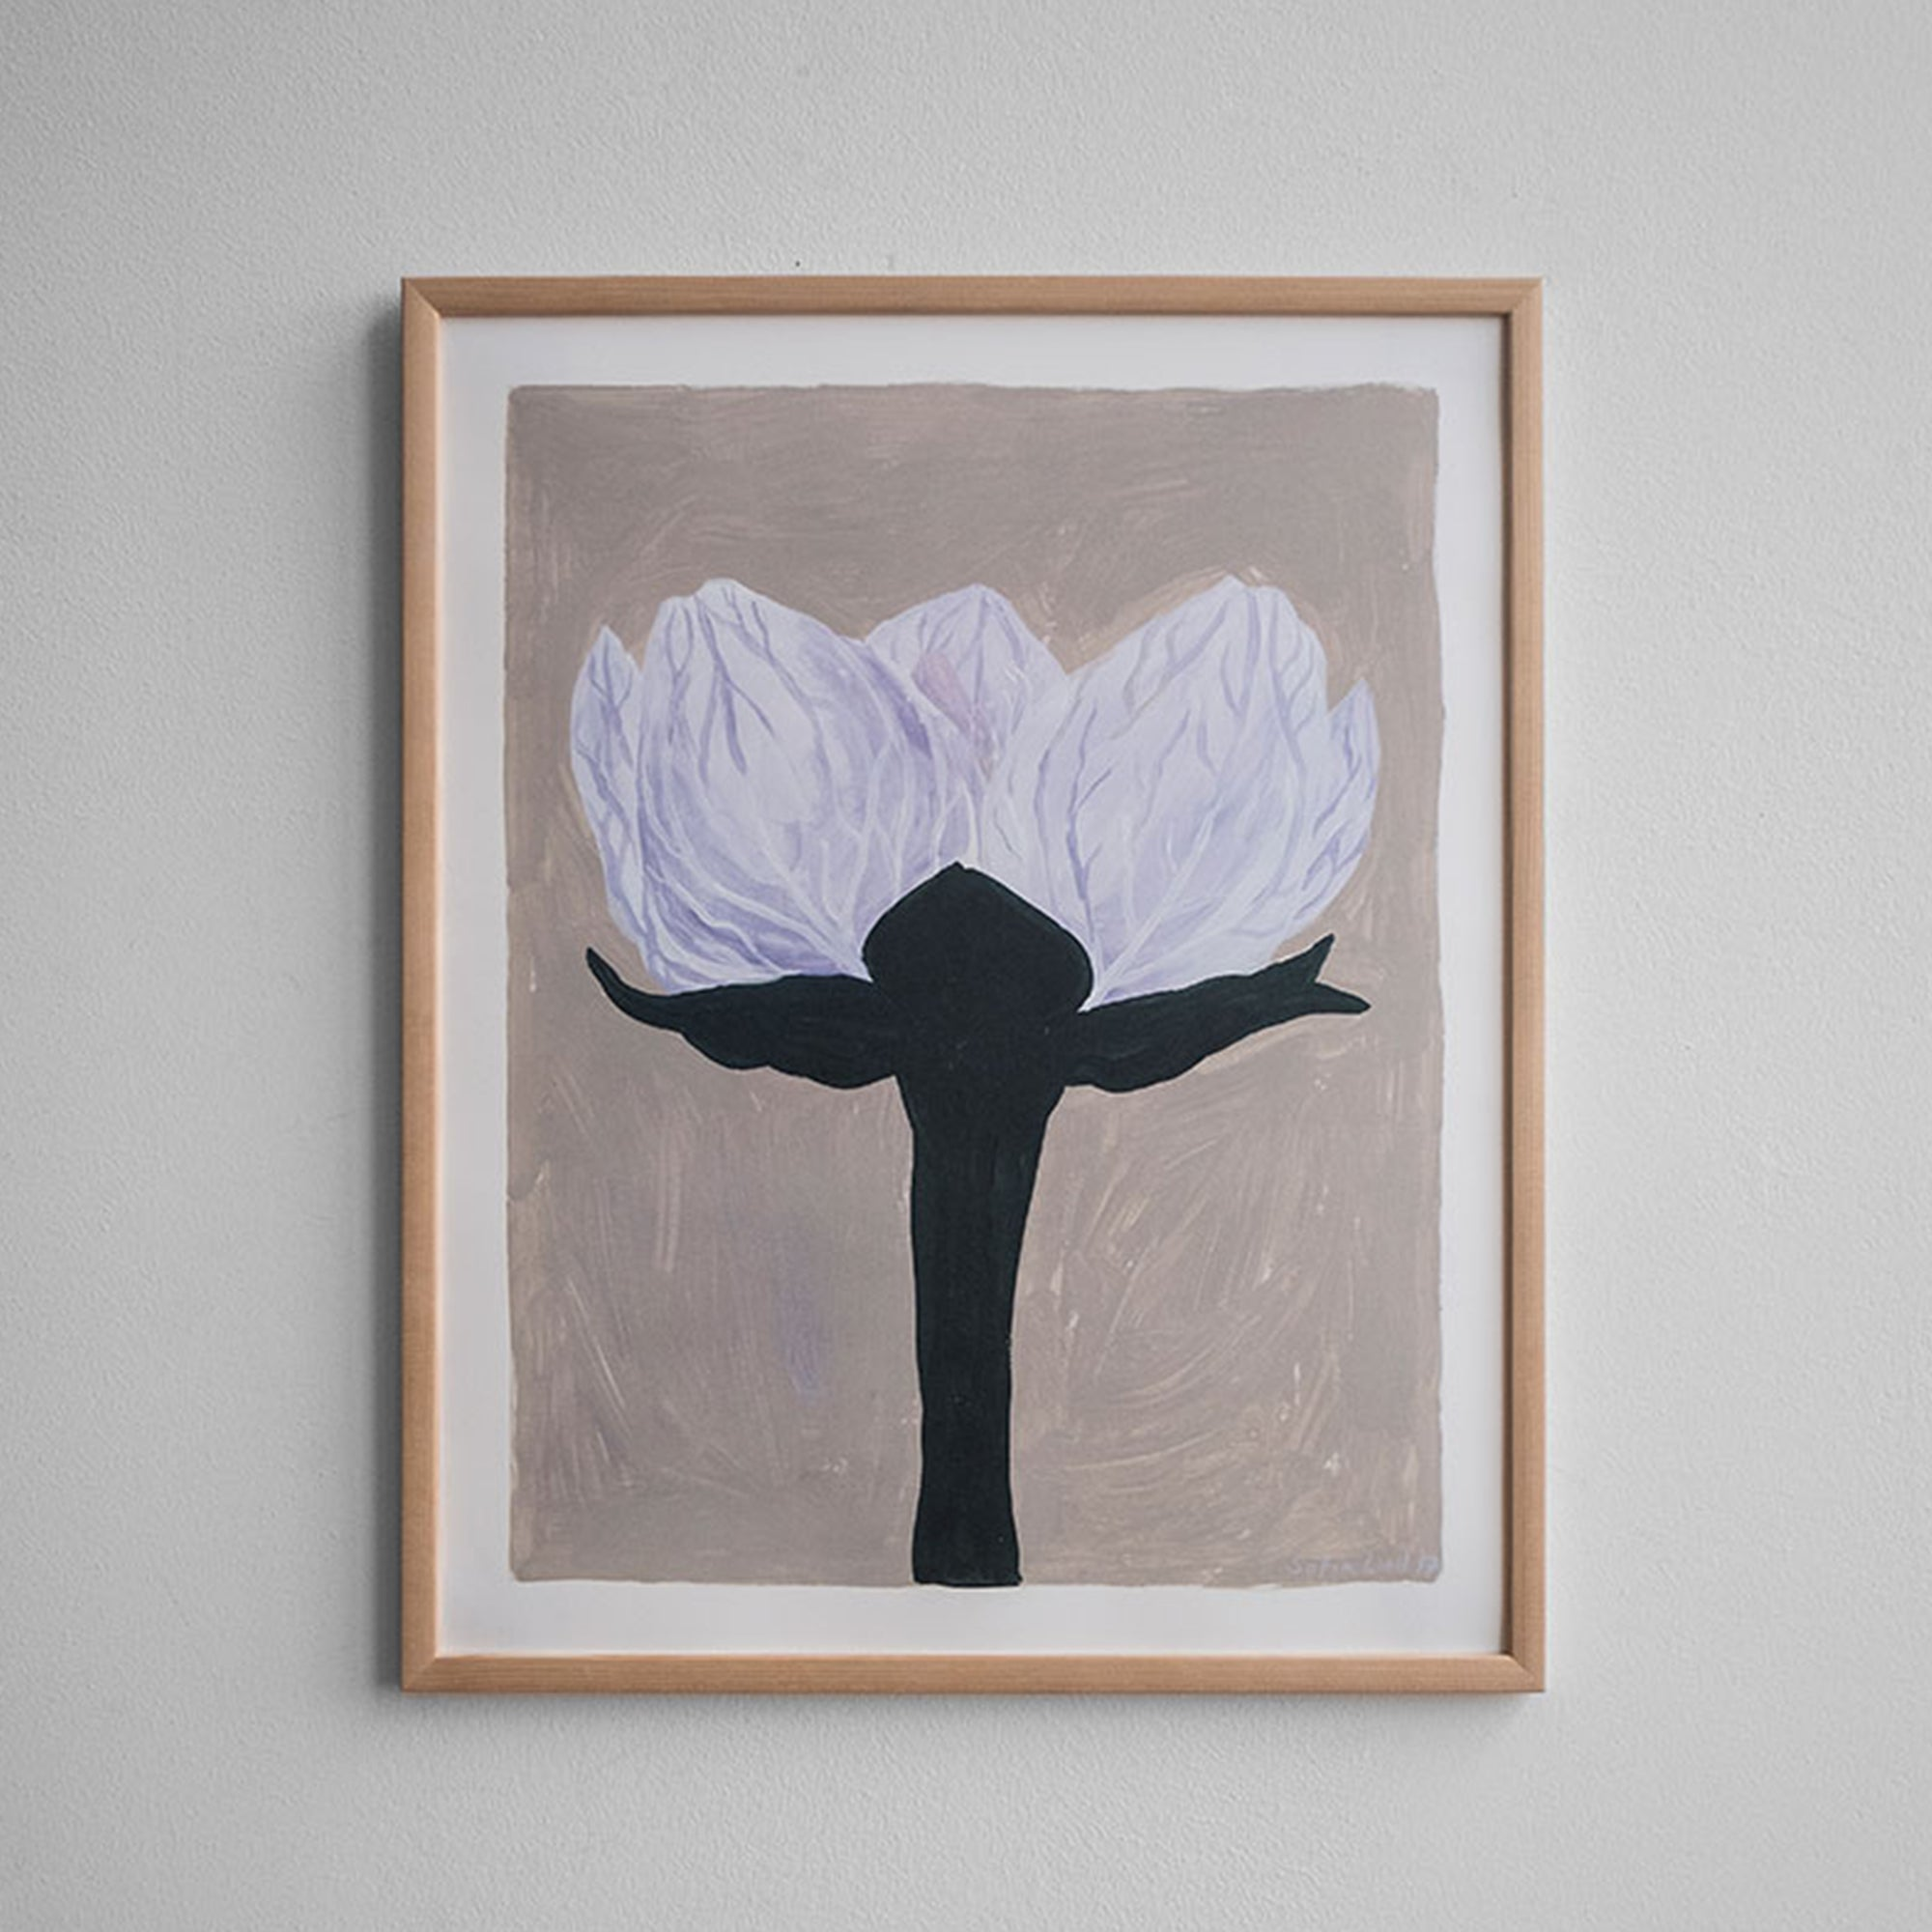 Fine Little Day Slatterblomma Poster - Scandi Minimal